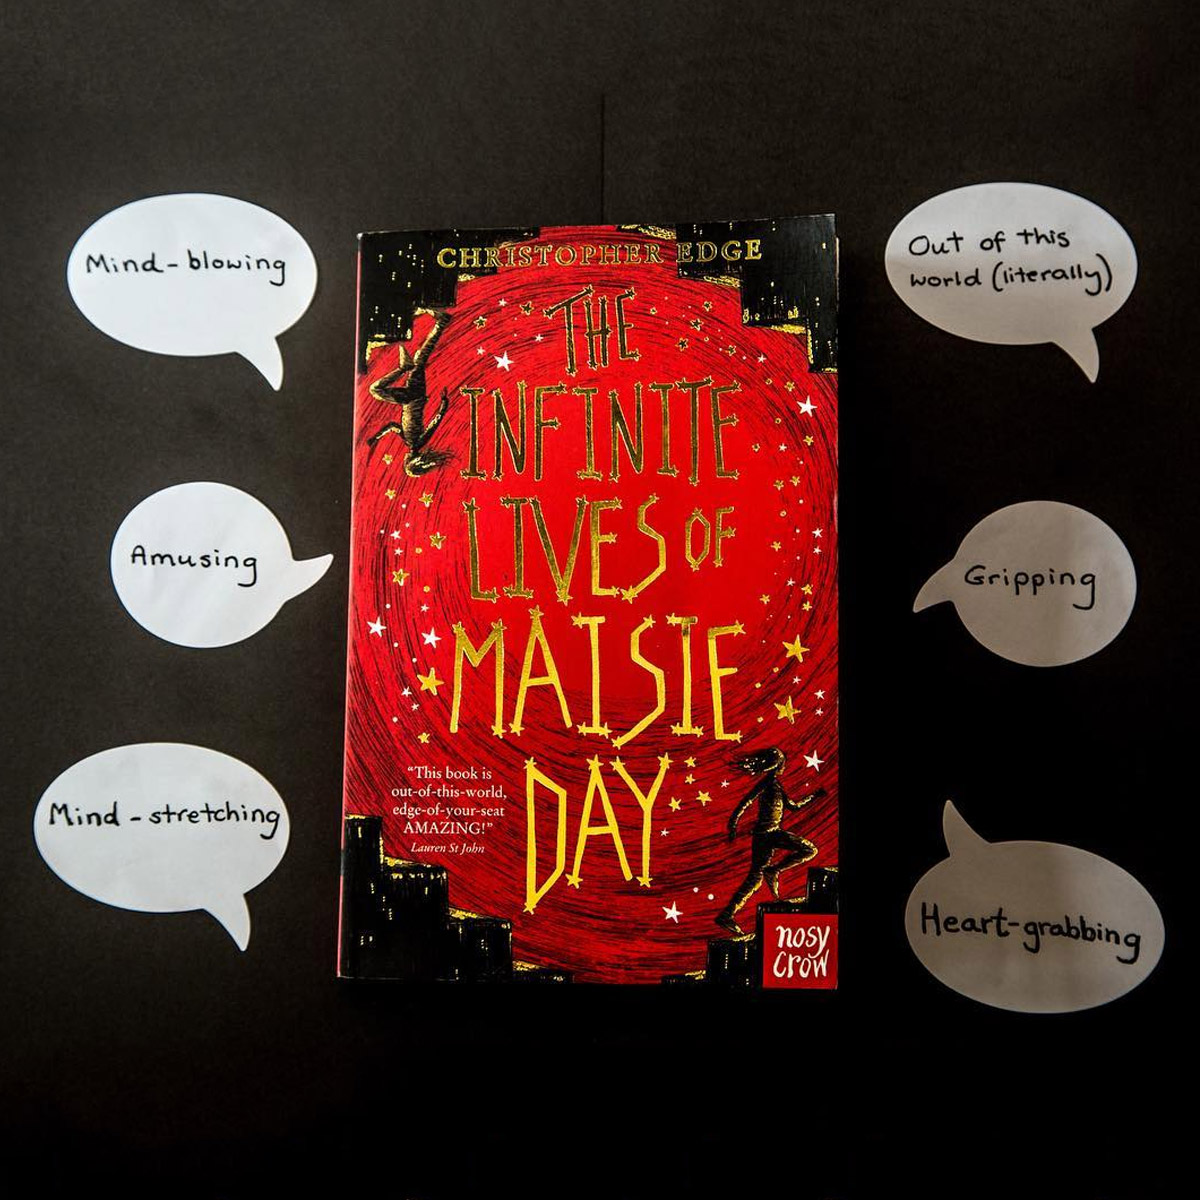 The Infinite Lives of Masie Day by Christopher Edge